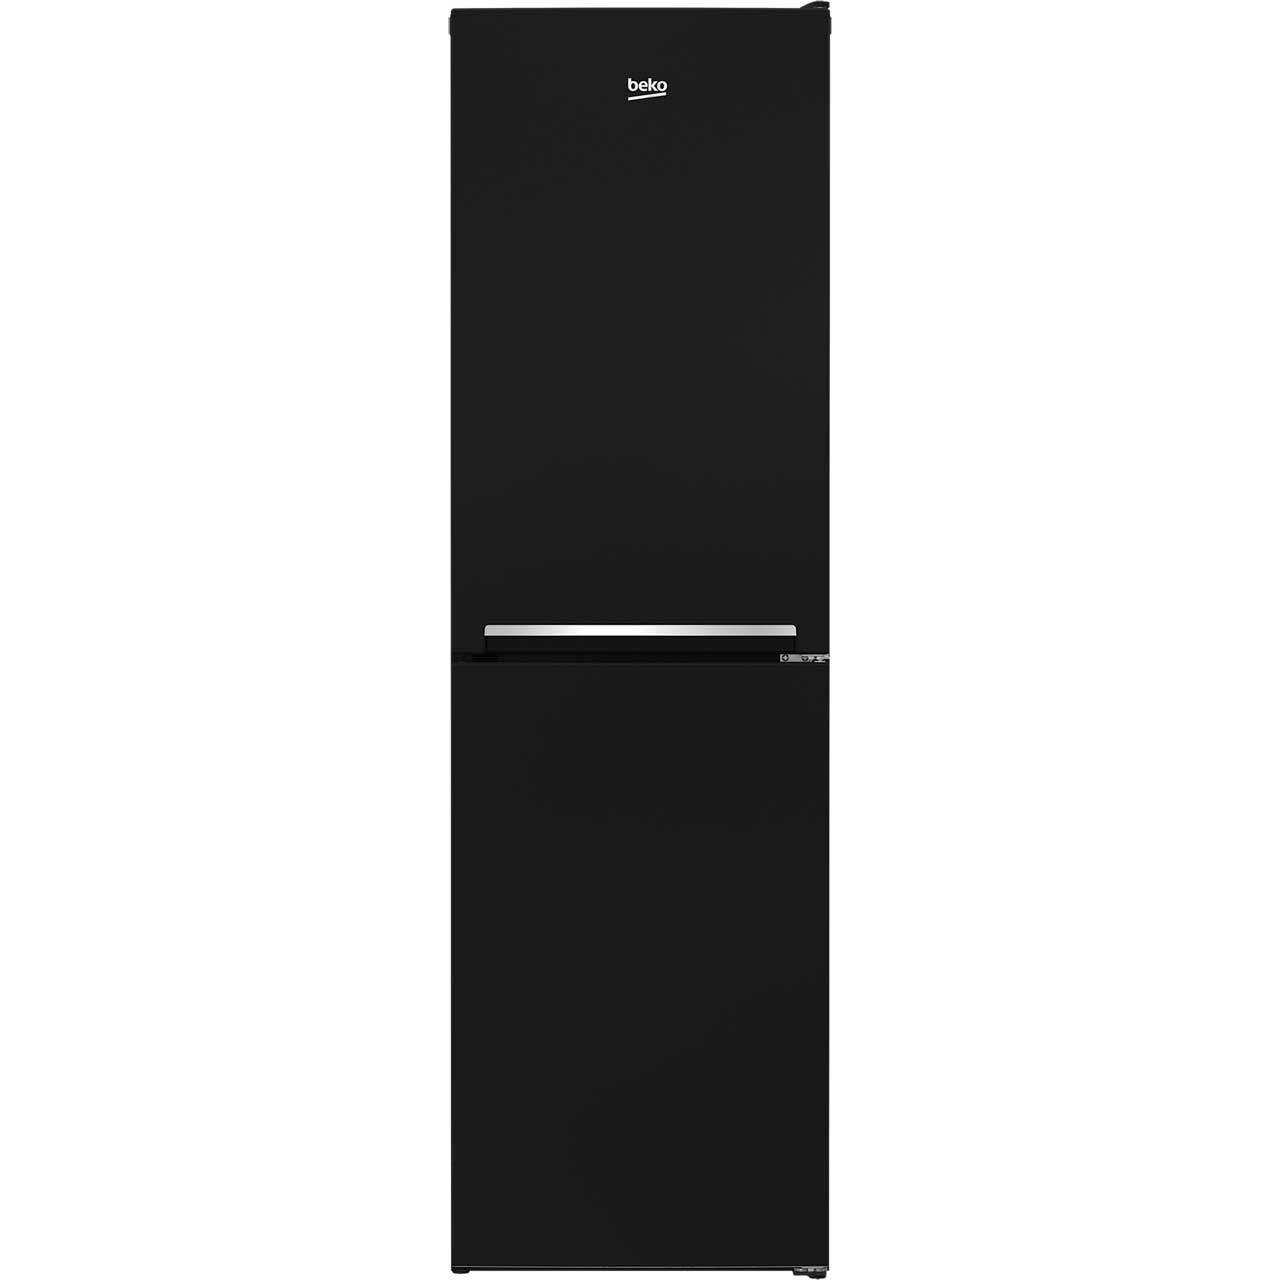 Beko CFG1582B Free Standing Fridge Freezer Frost Free in Black